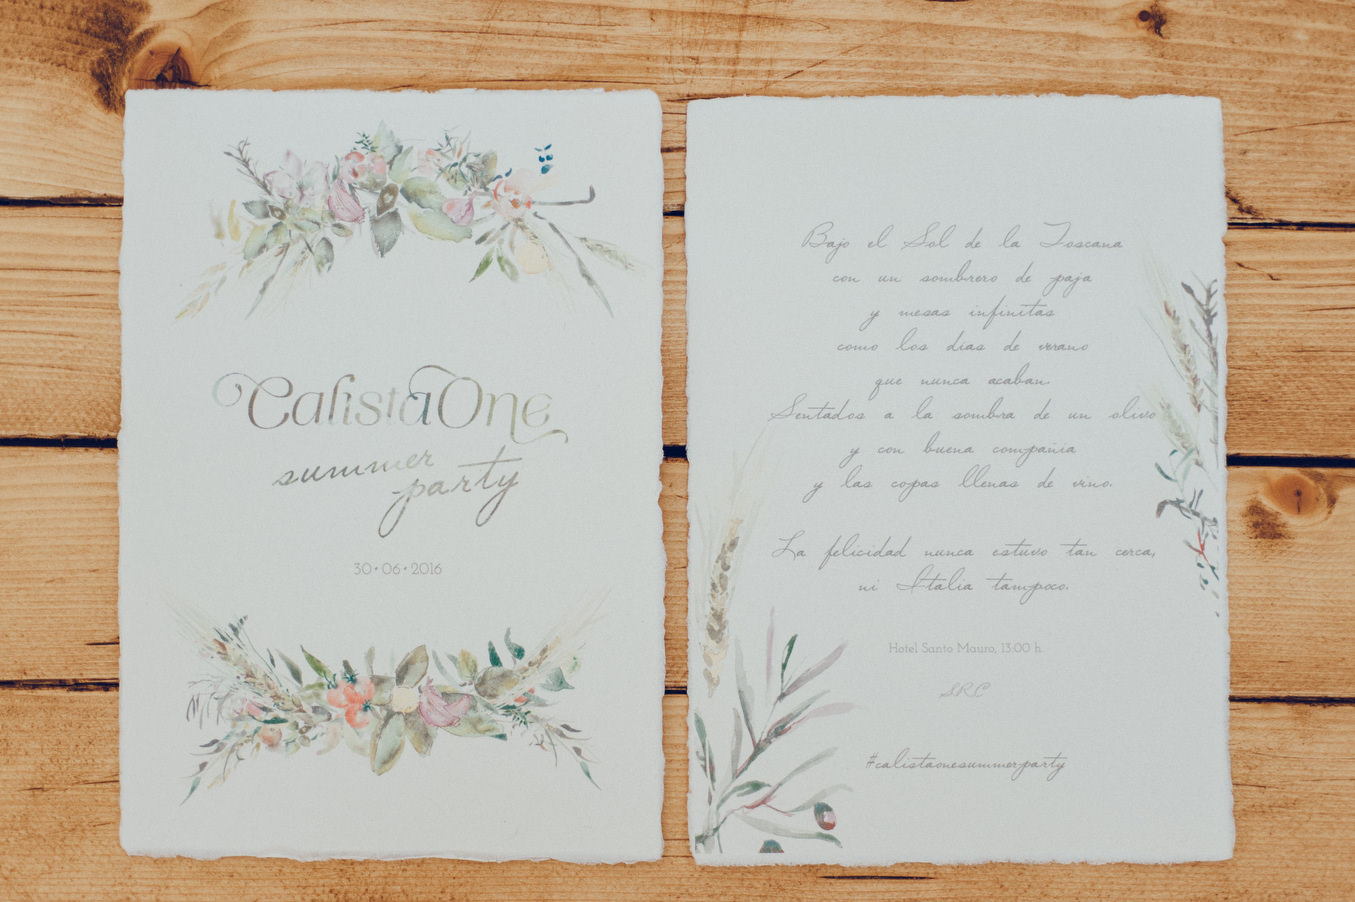 calista-one-lista-de-bodas-online-blog-de-bodas-calista-one-summer-party-2016-invitaciones-7